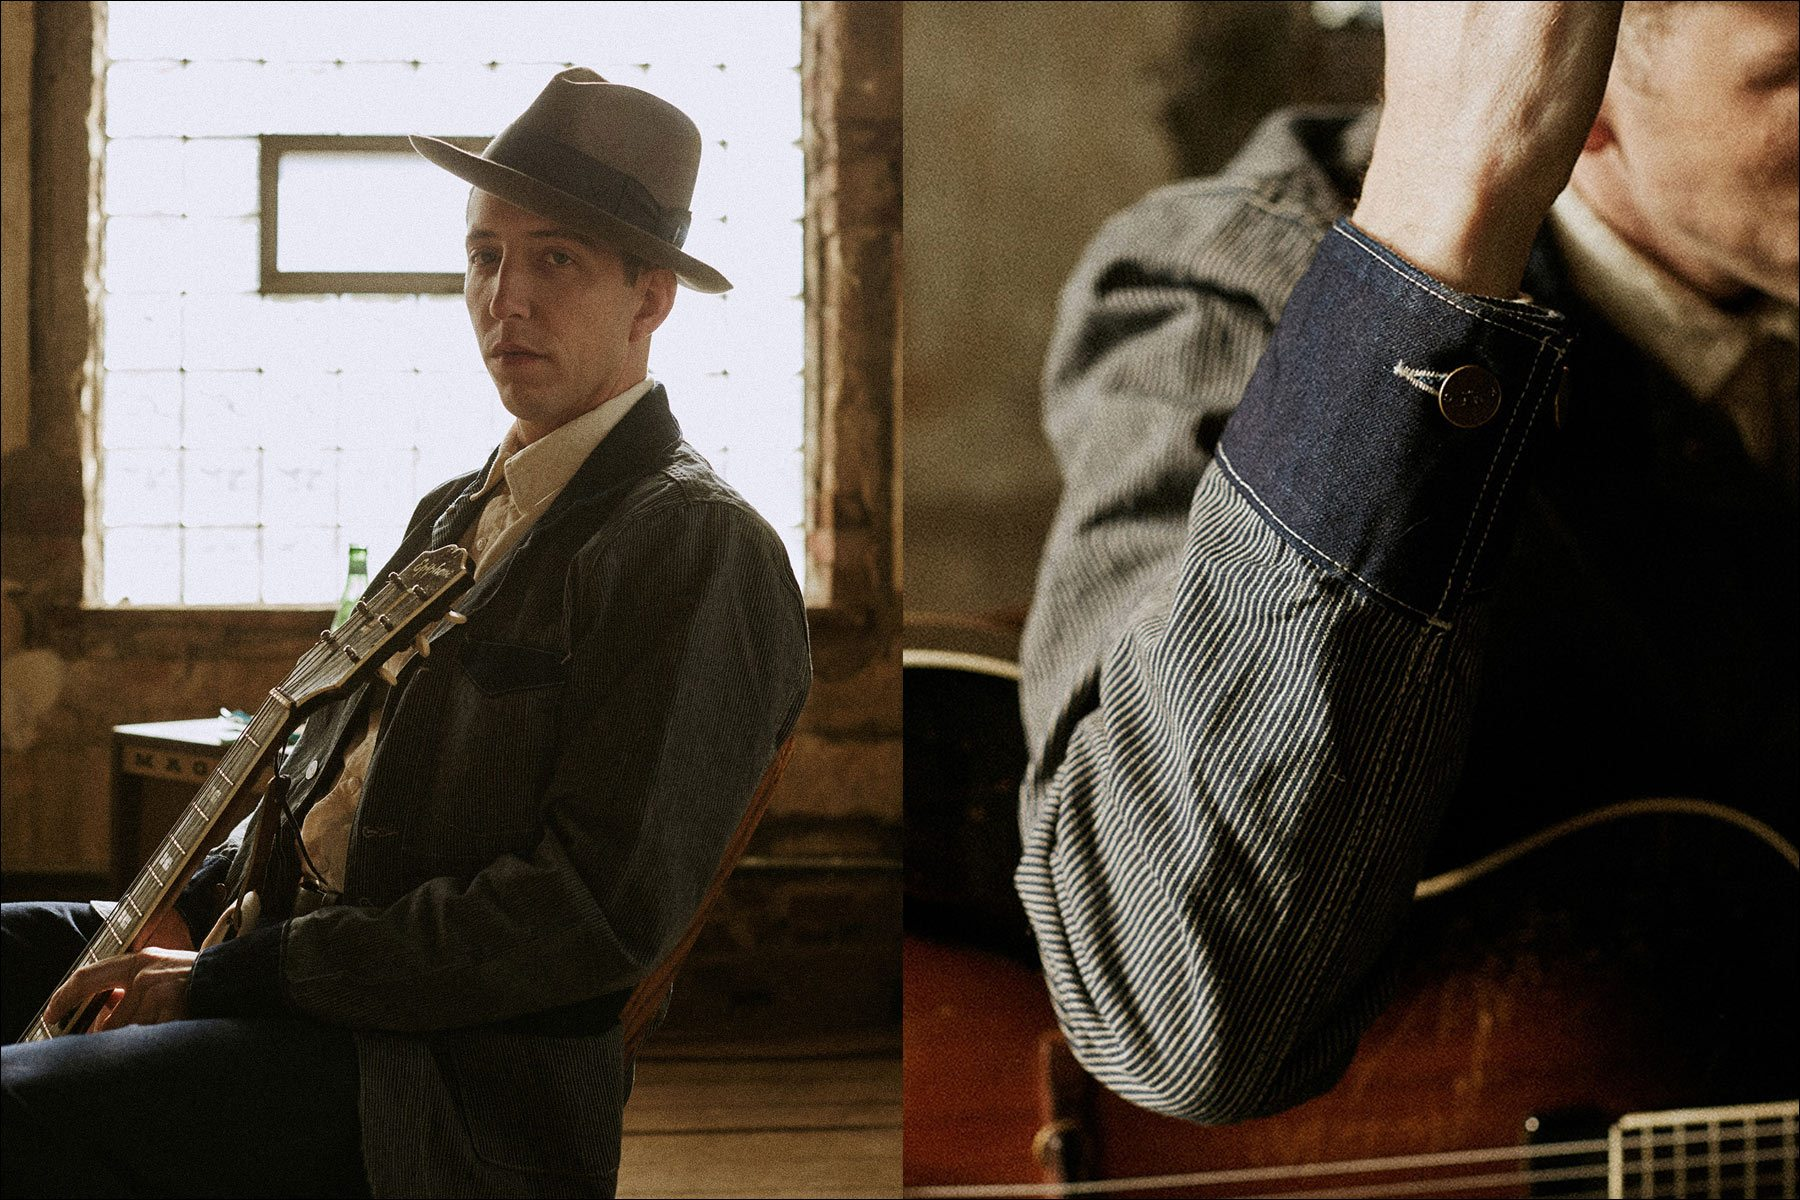 Pokey LaFarge photographed by Noah Sahady for his clothing collaboration with Knickerbocker Mfg. Co. Ponyboy magazine NY.